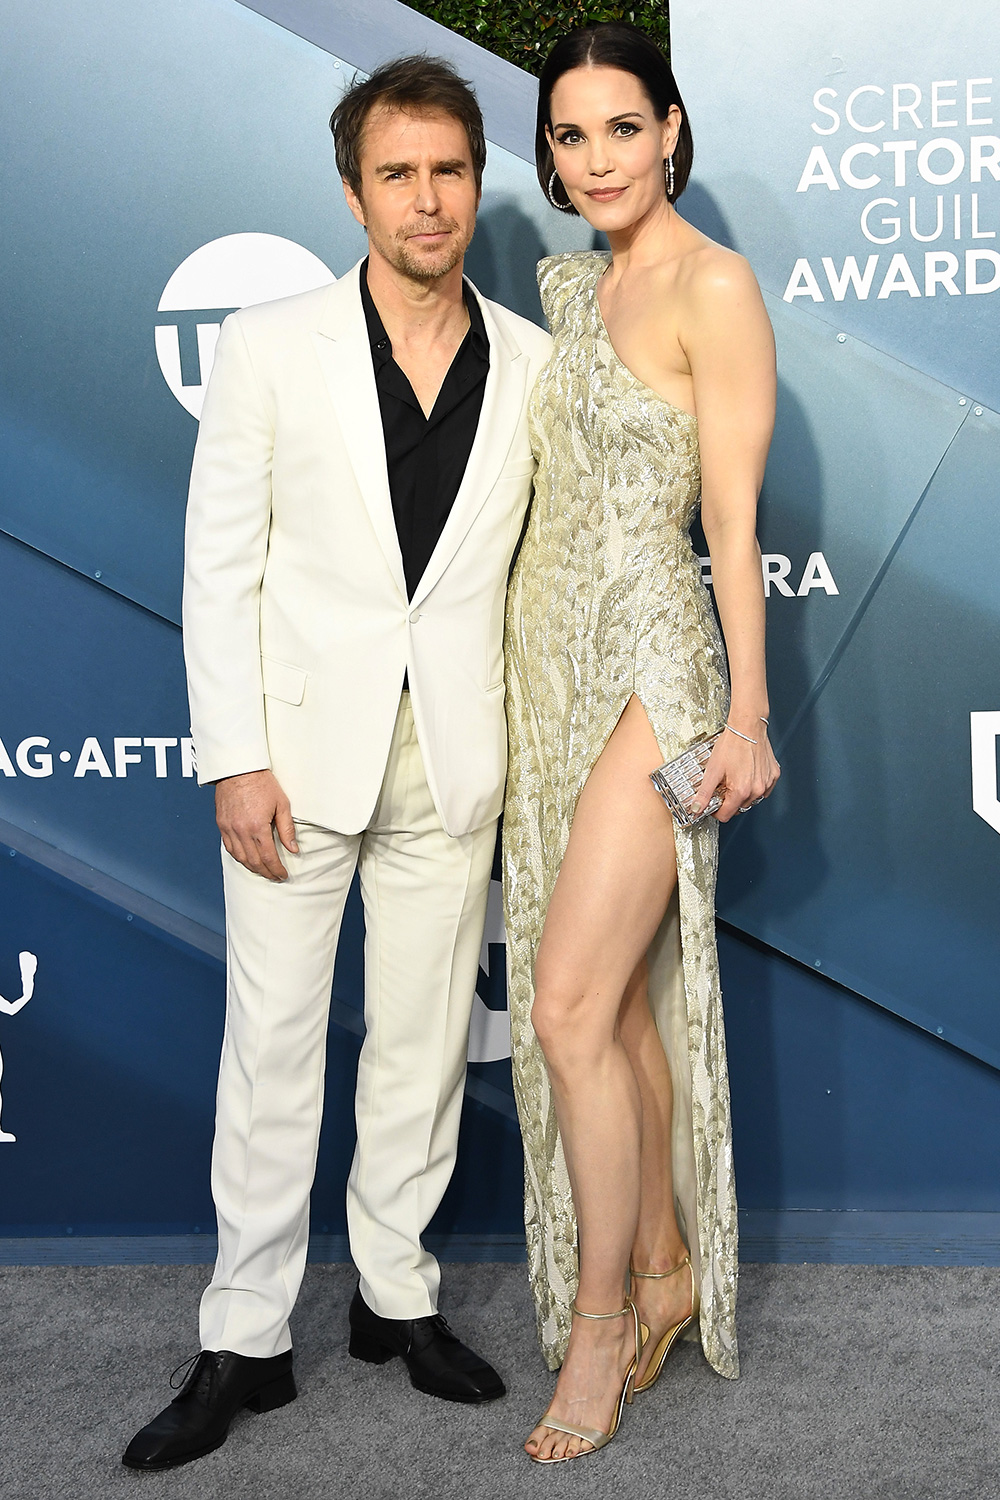 Sam Rockwell and Leslie Bibb attend the 26th Annual Screen ActorsGuild Awards at The Shrine Auditorium on January 19, 2020 in Los Angeles, California